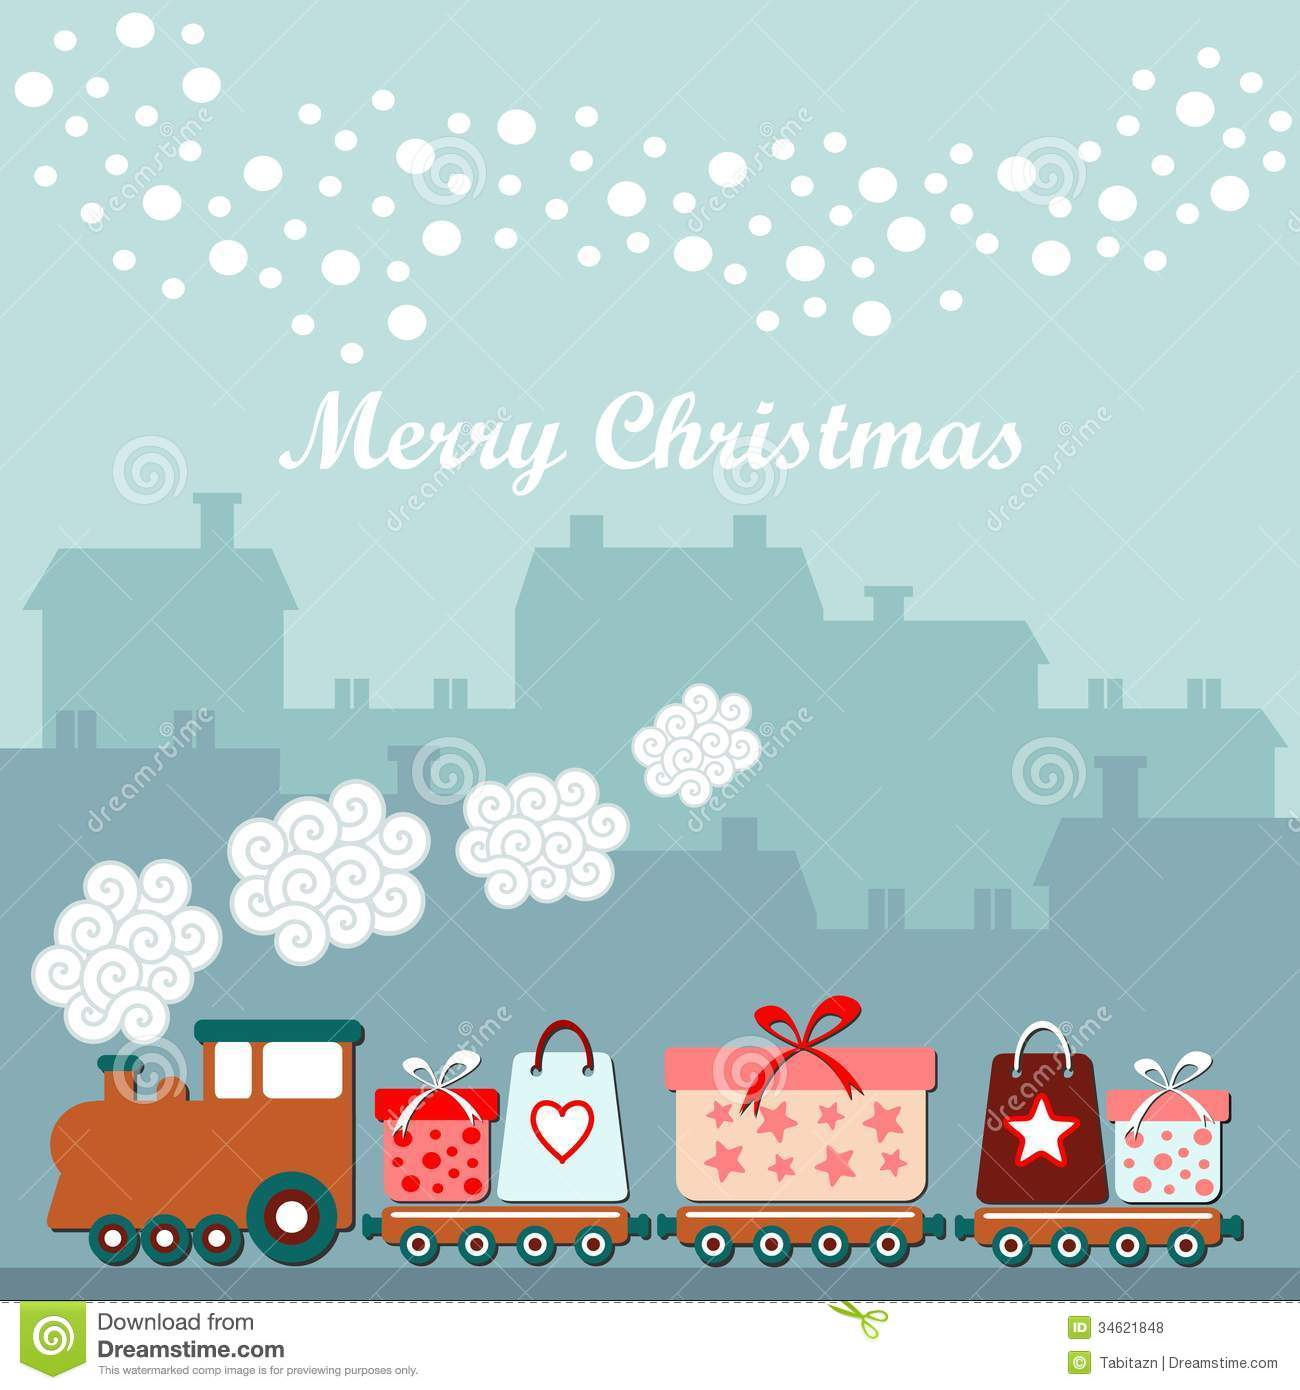 Snow Falling Wallpaper Hd Cute Christmas Card With Train Gifts Winter Houses